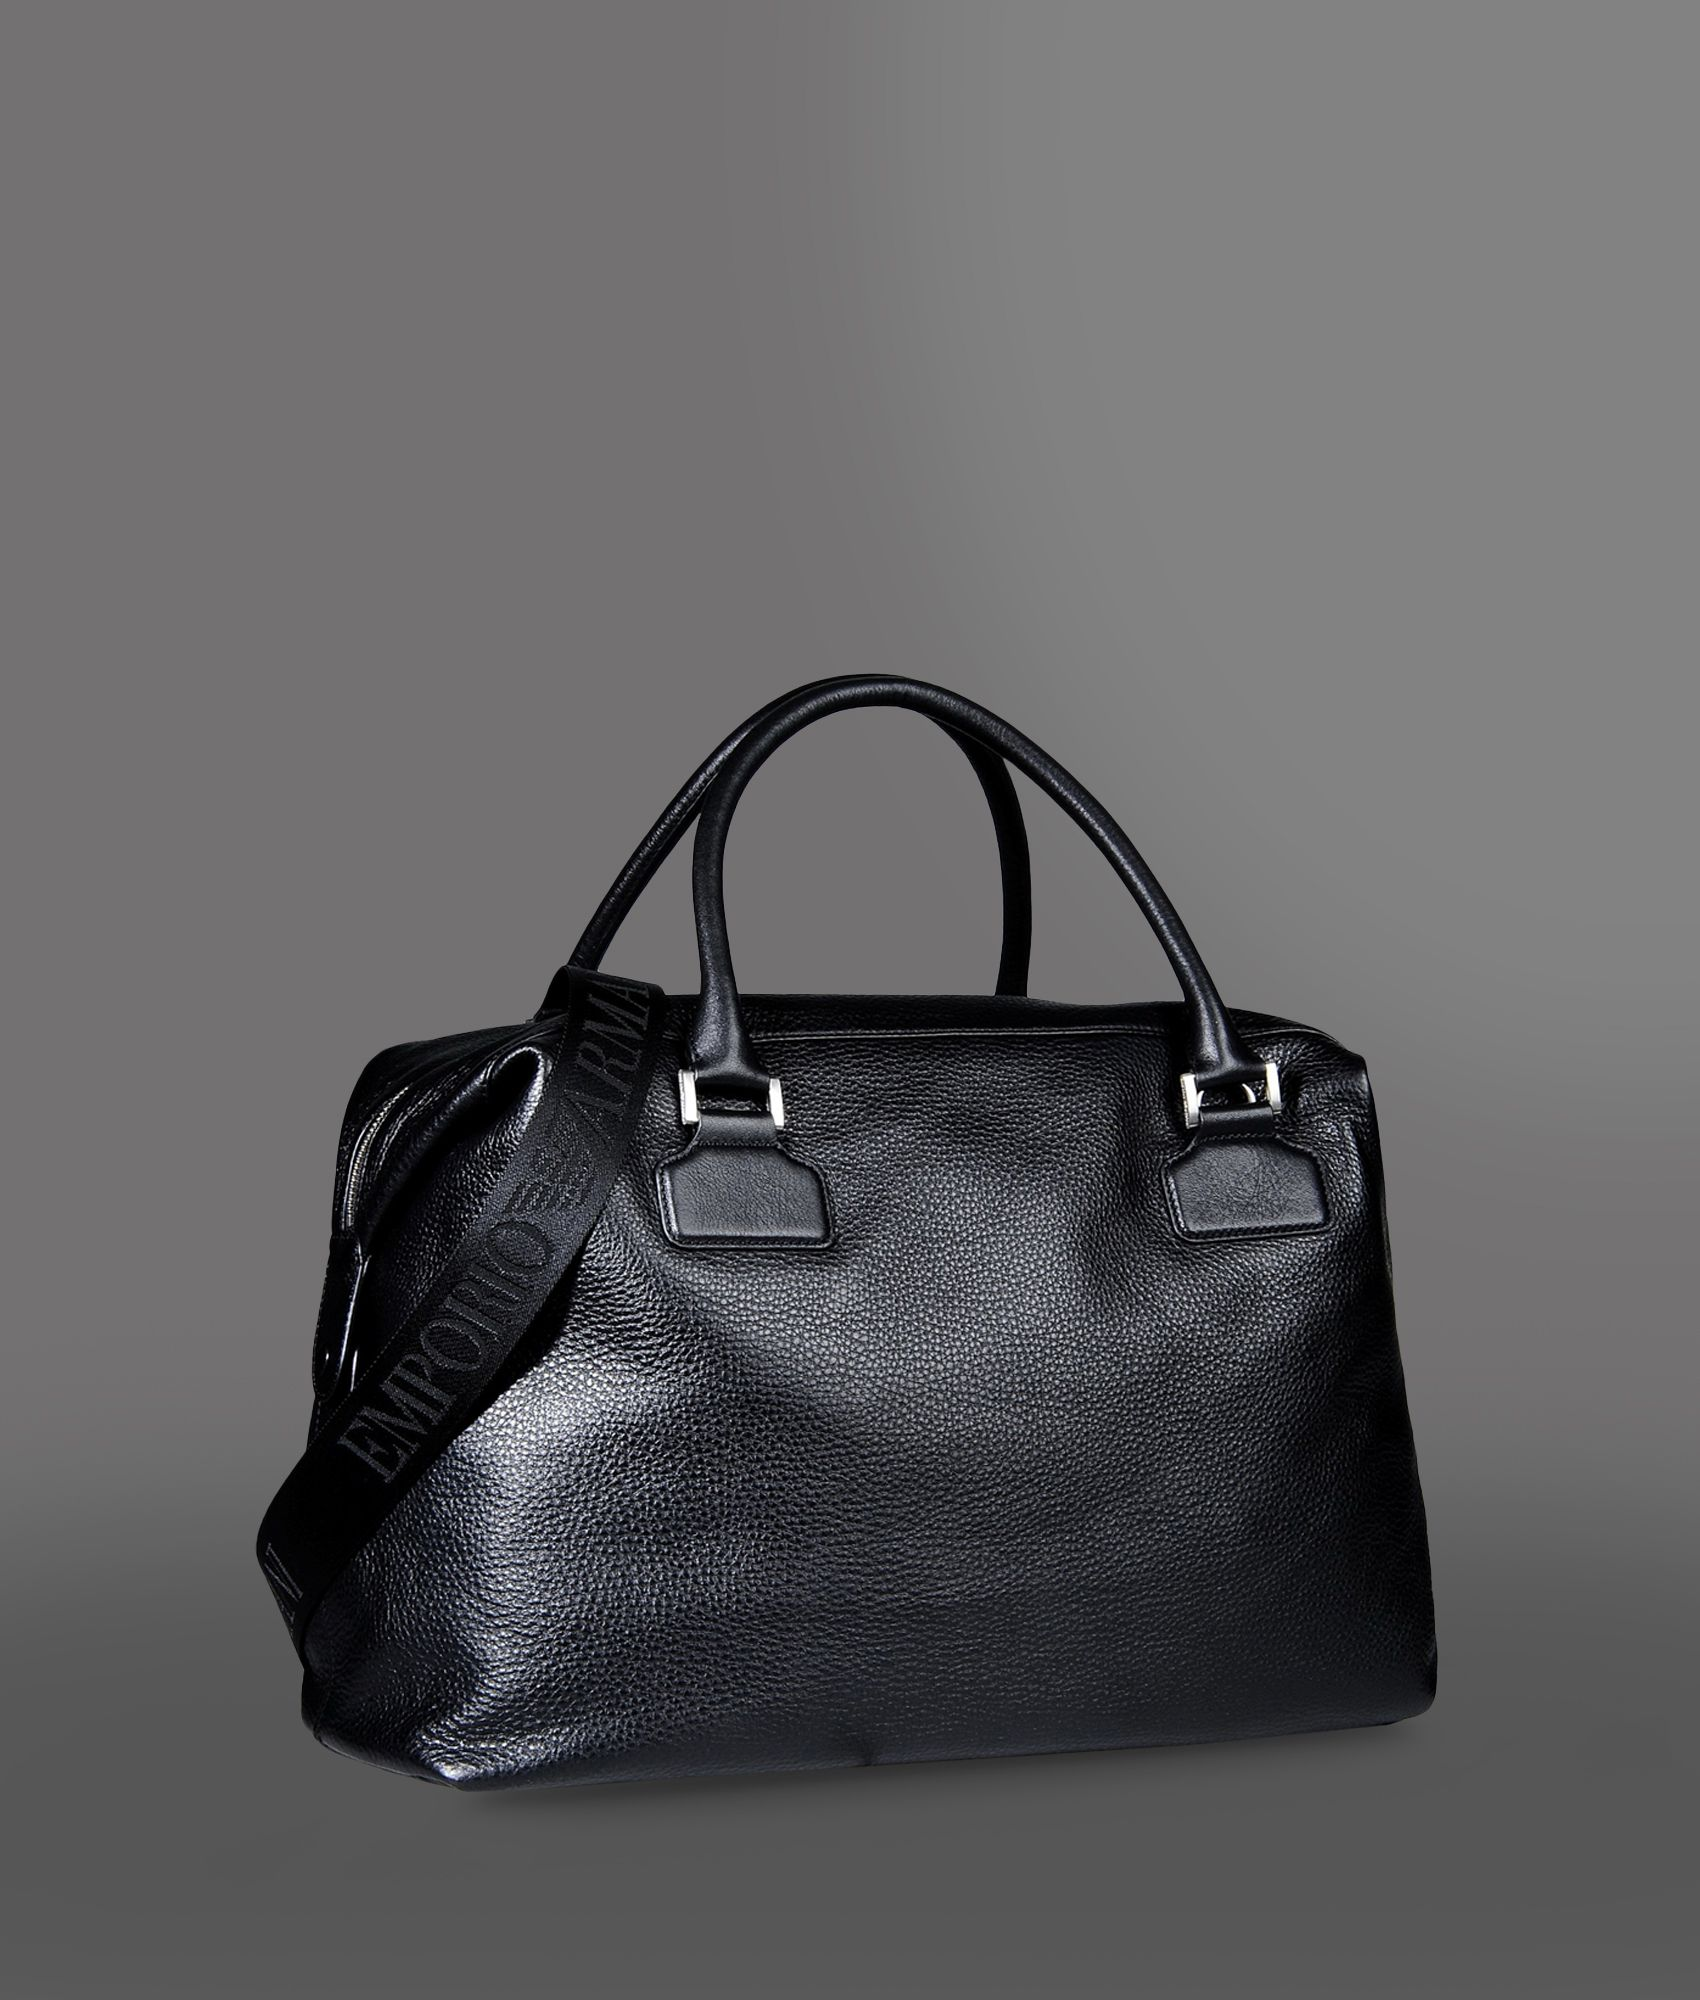 Lyst - Emporio Armani Travel Bag in Black for Men 202a6ea4f6